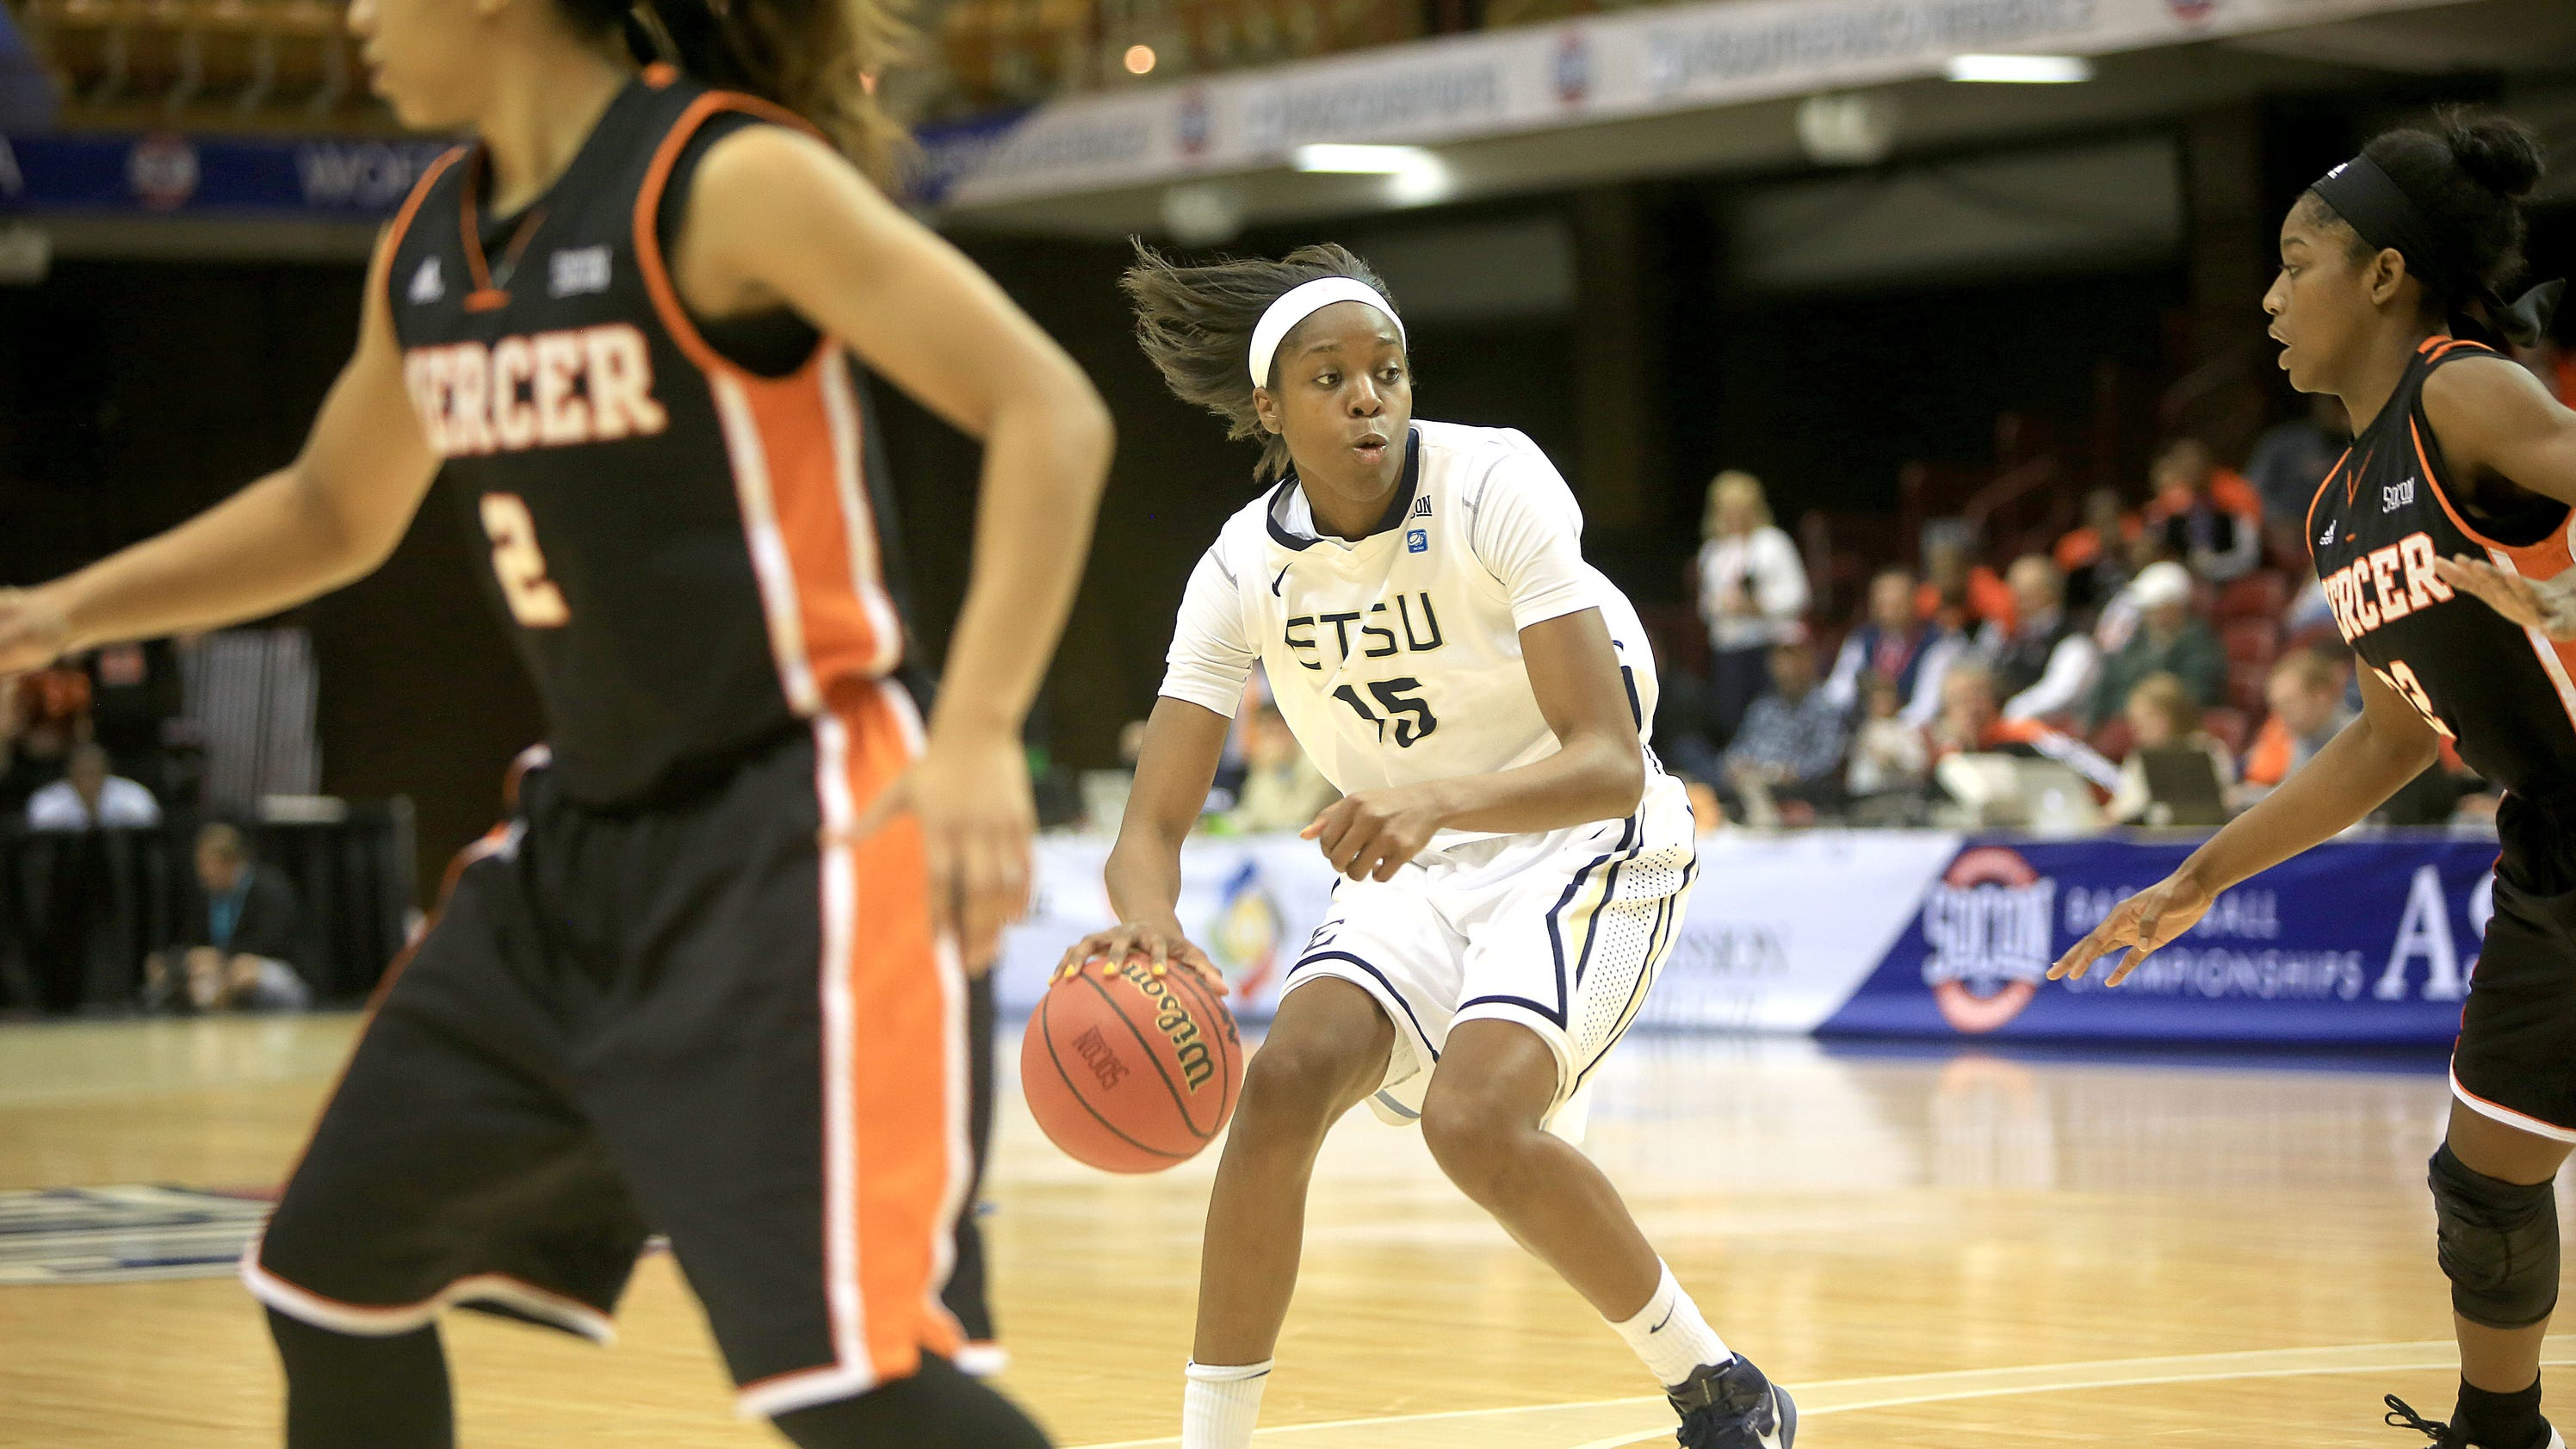 Win brings East Tennessee State senior to tears